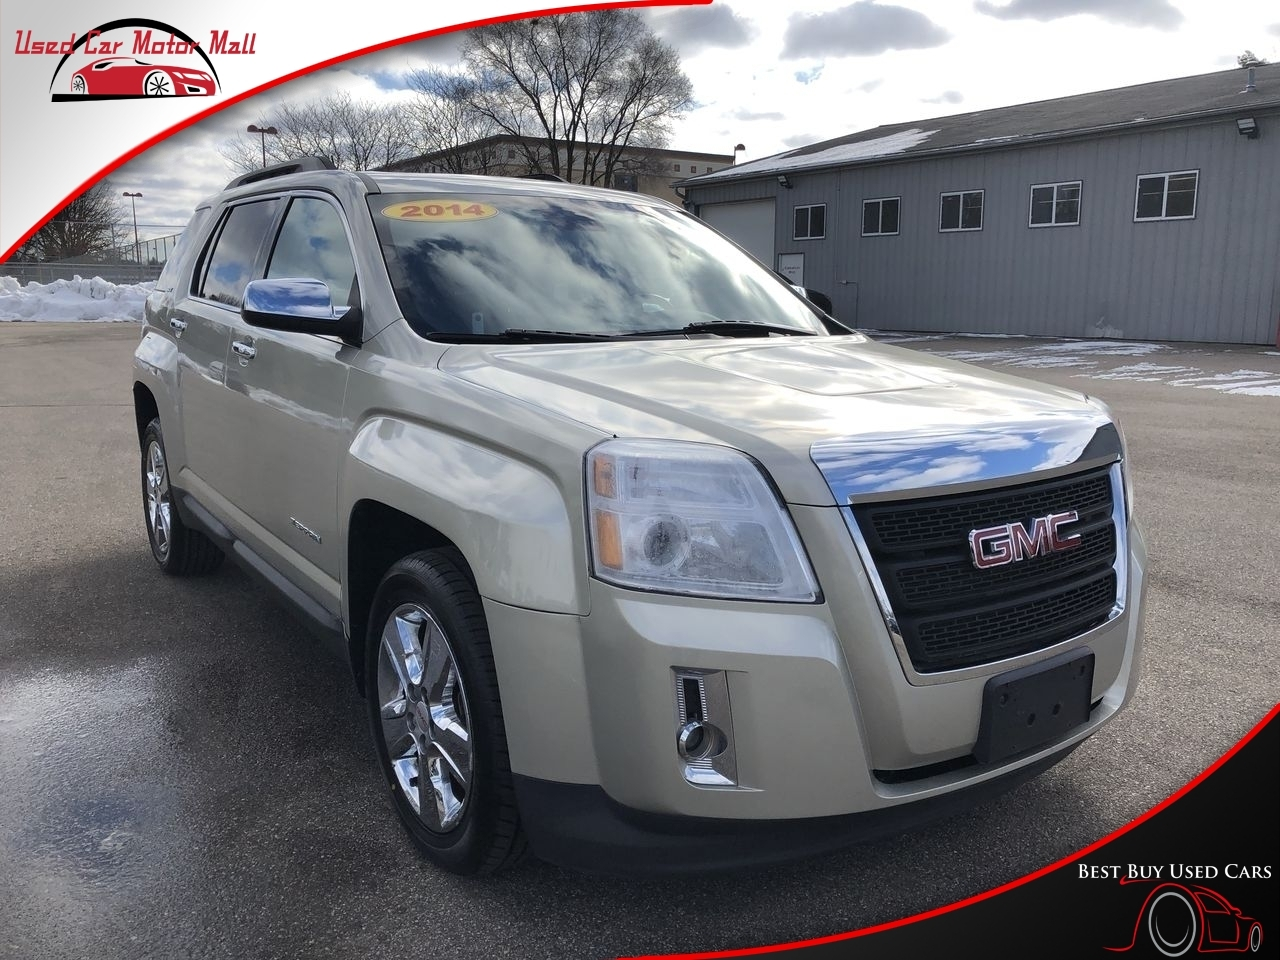 2009 GMC Yukon Denali AWD 4dr, 197134, Photo 1